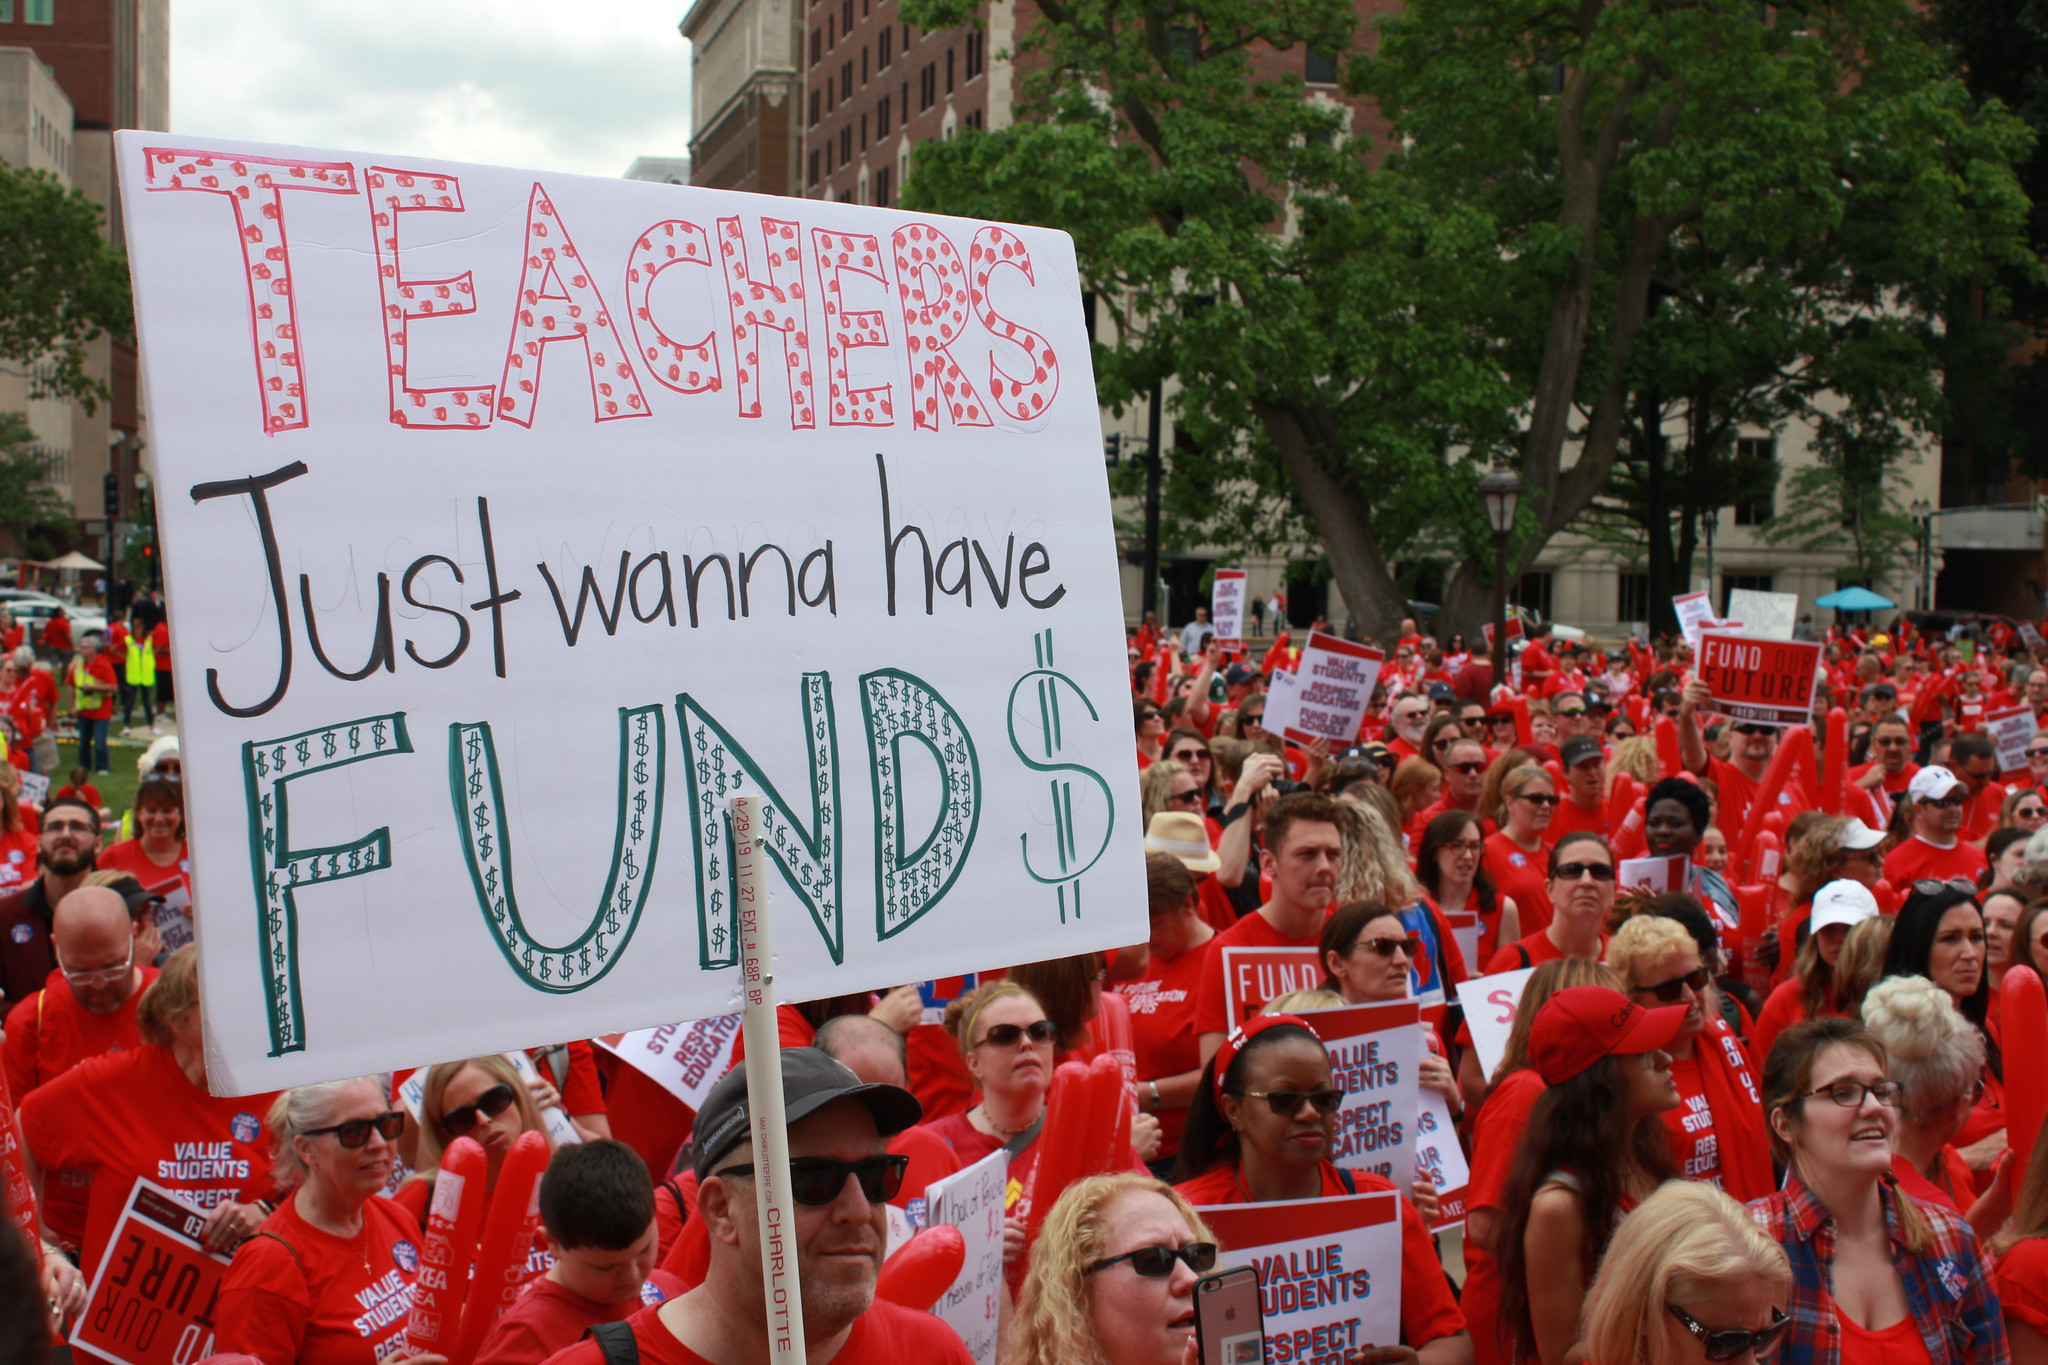 Michigan Educator's March to the Capitol to Demand Change